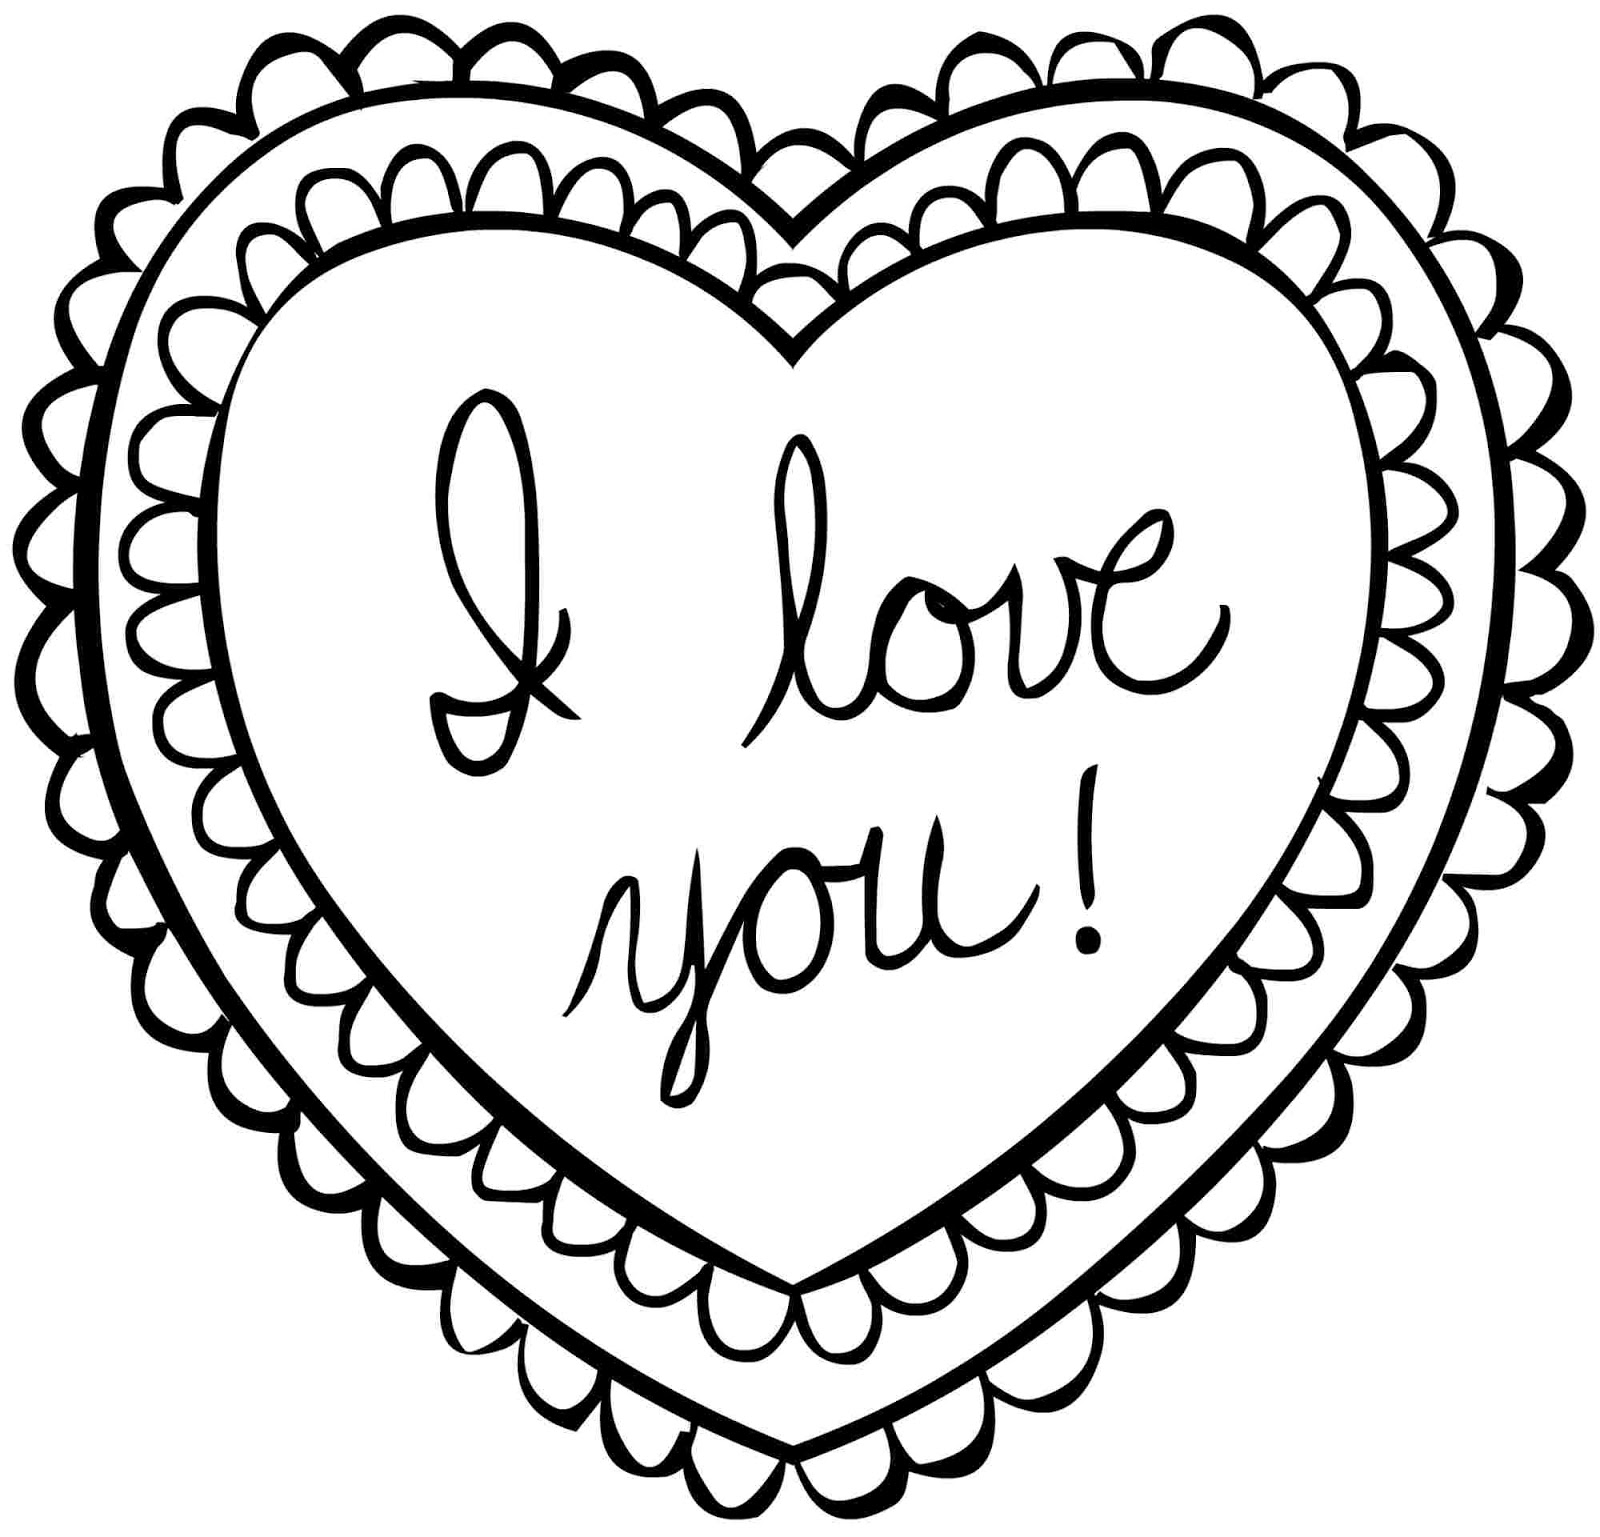 kids heart coloring pages free printable heart coloring pages for kids cool2bkids coloring heart kids pages